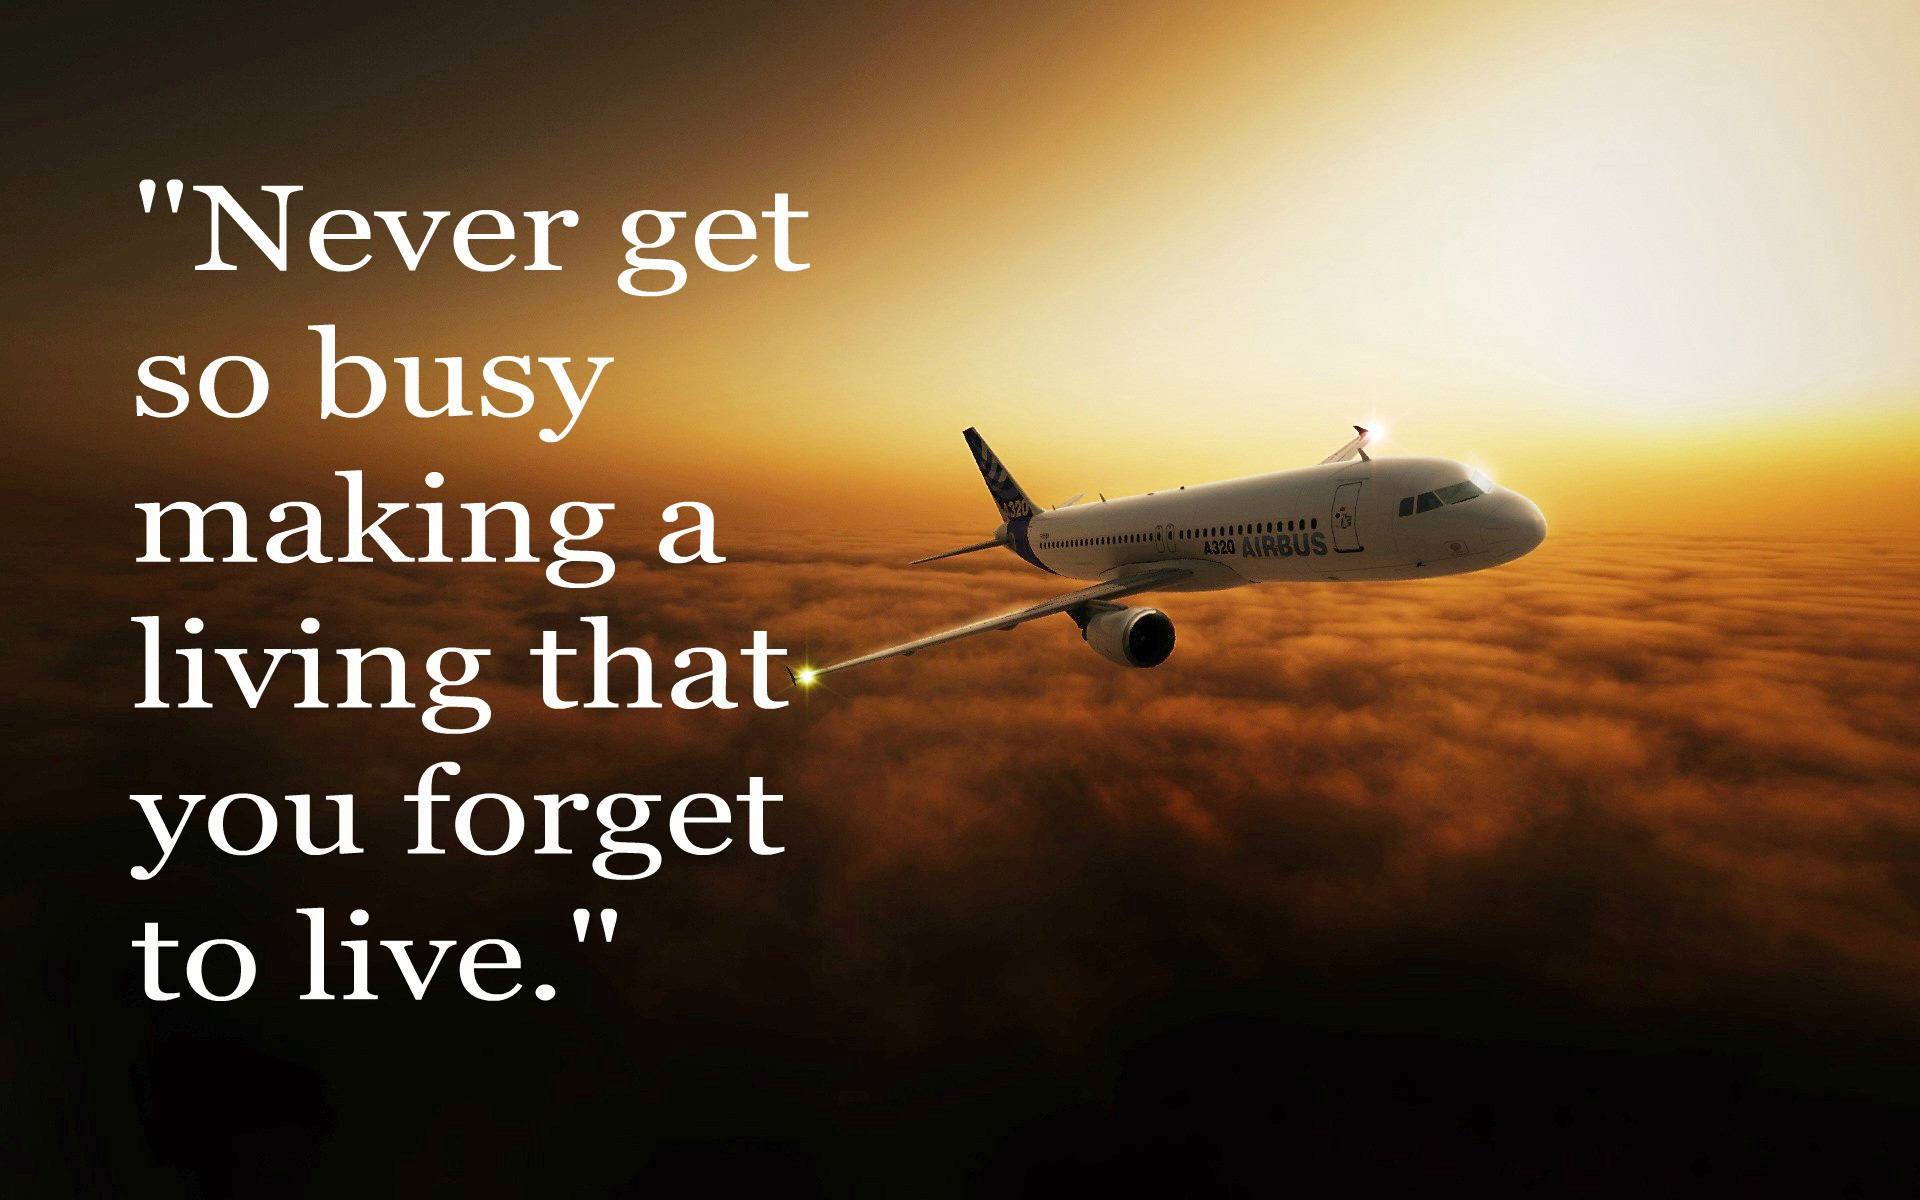 Quotes To Inspire 10 Best Travel Quotes That Inspire To Travel  The Coffeelicious